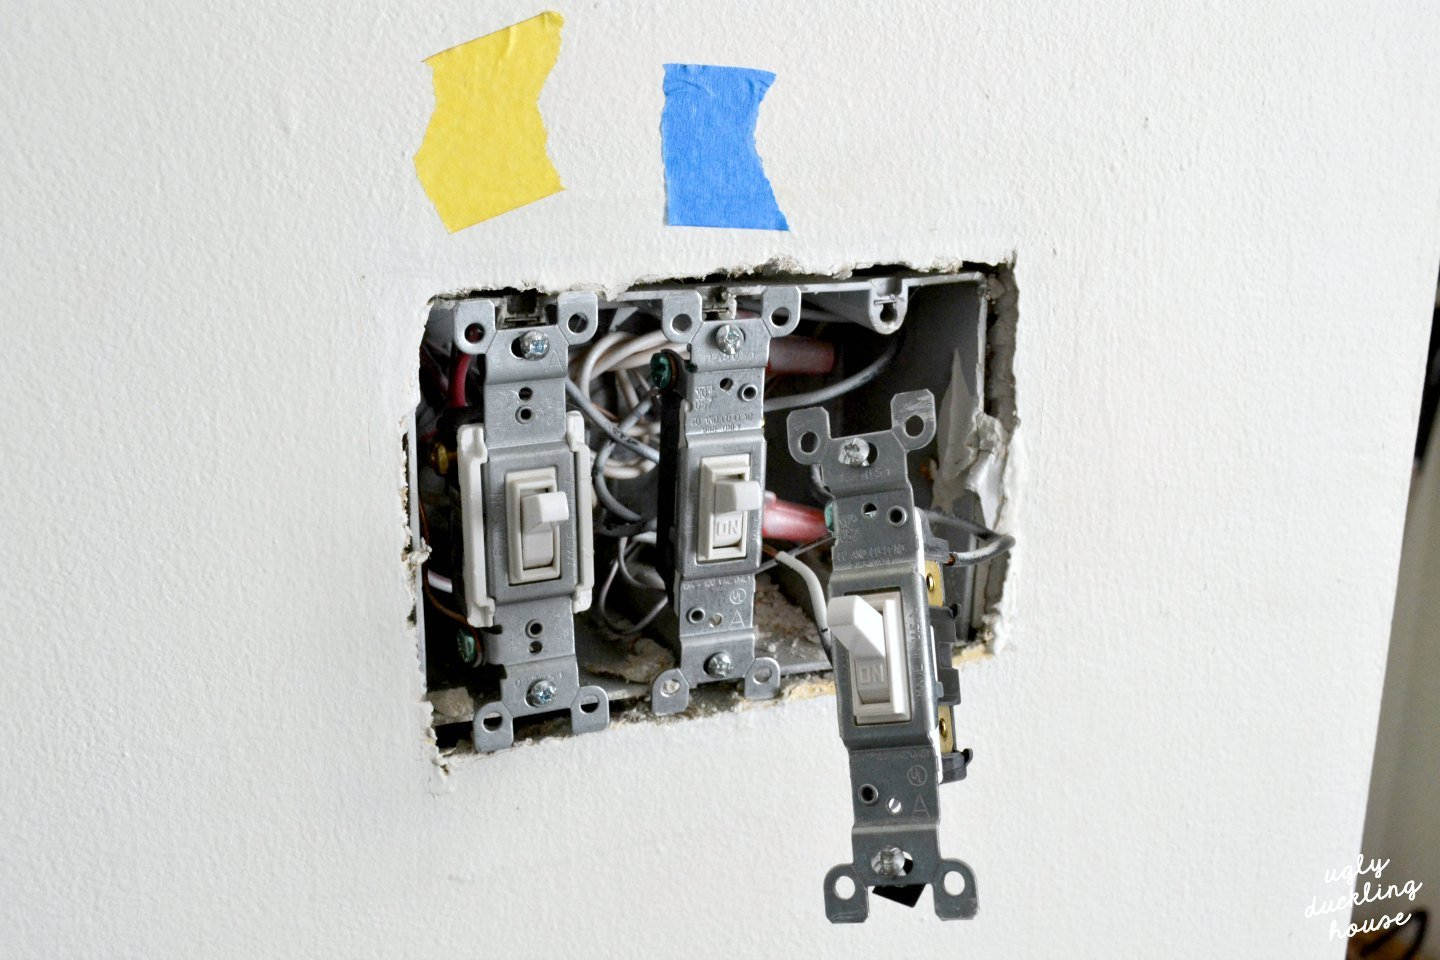 removing old switches to install new ones